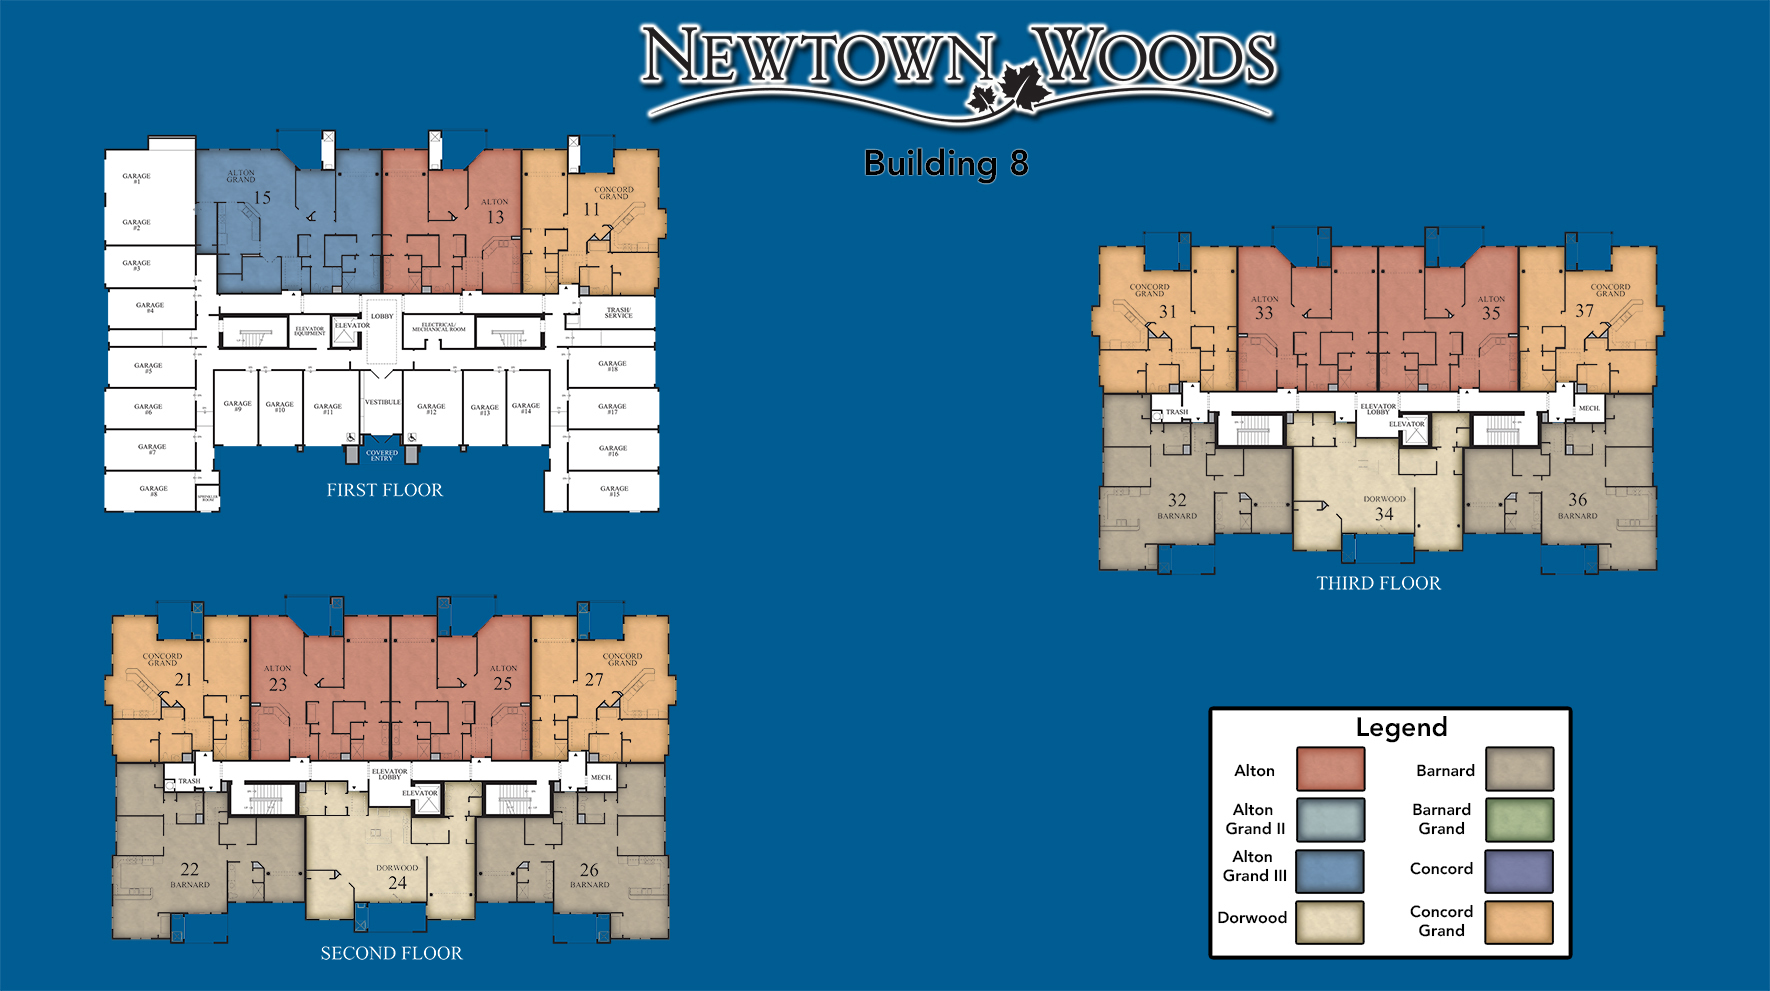 Newtown woods regency collection the alton grand iii for Newtown builders